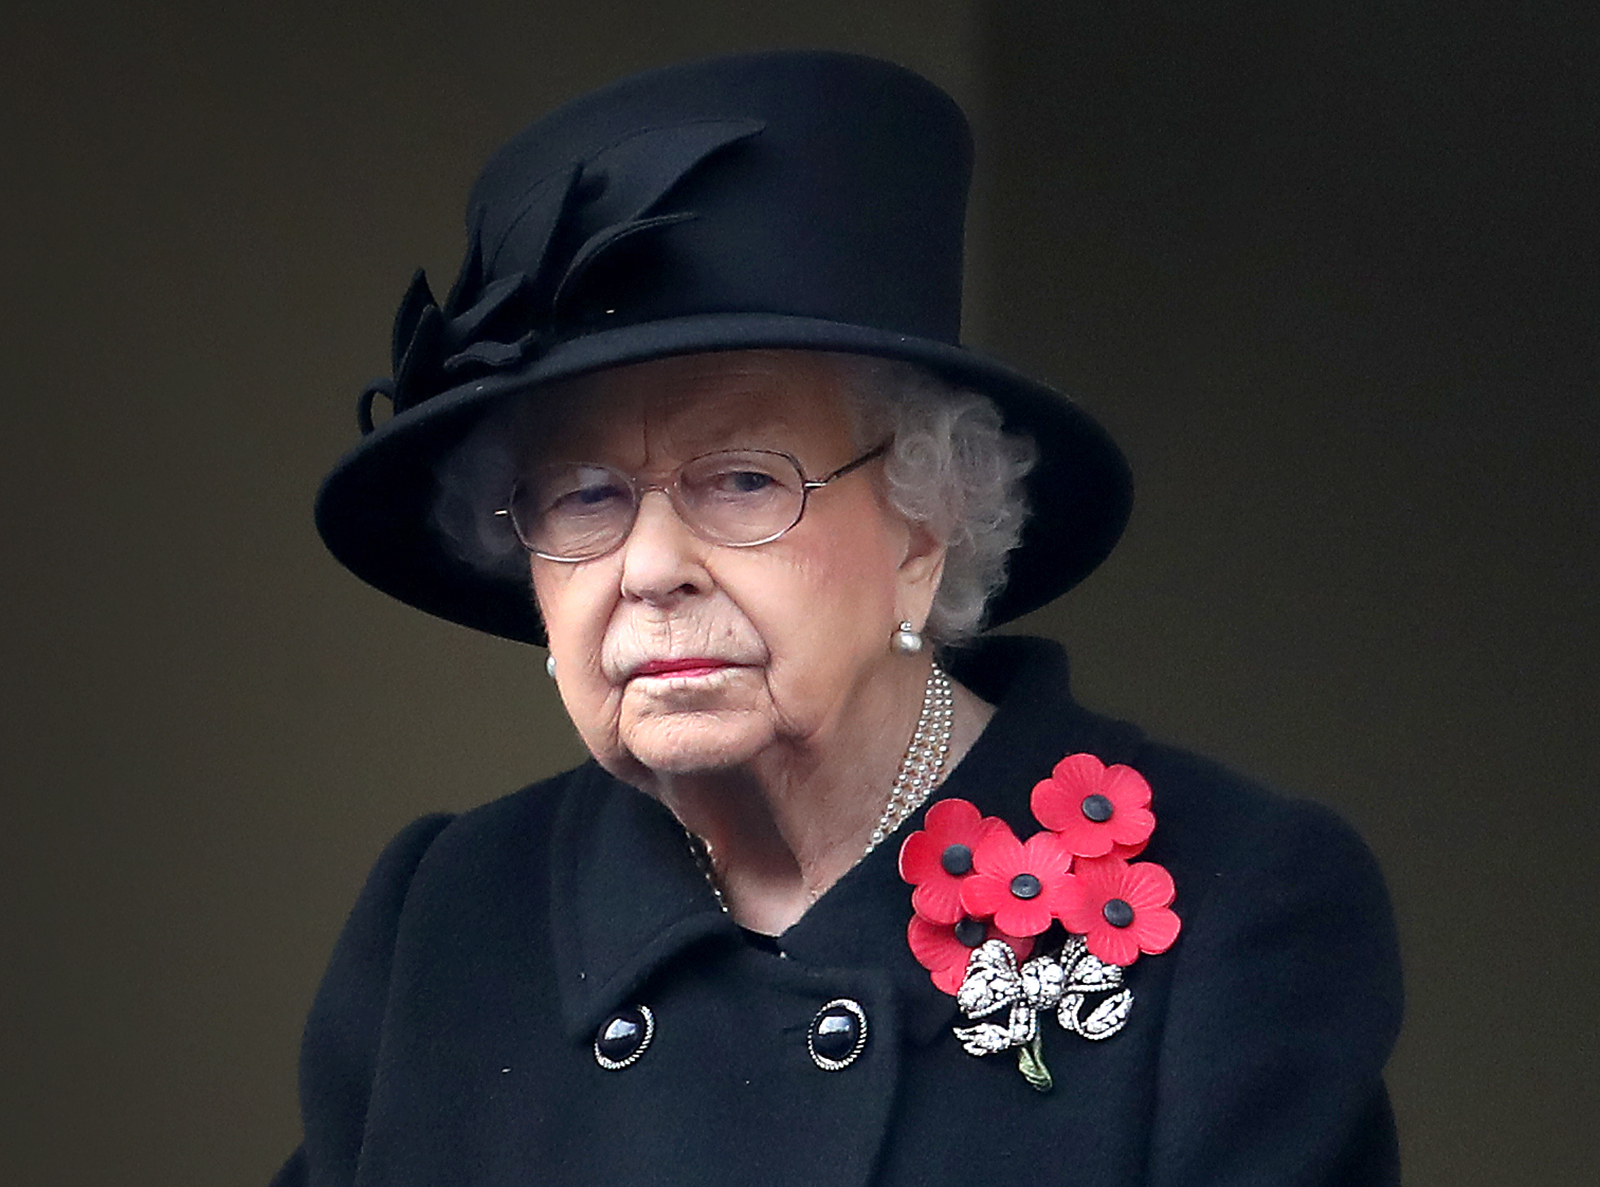 Queen Elizabeth II takes a glimpse during a memorial service at the memorial at The Cenotaph on November 8, 2020 in London, England.